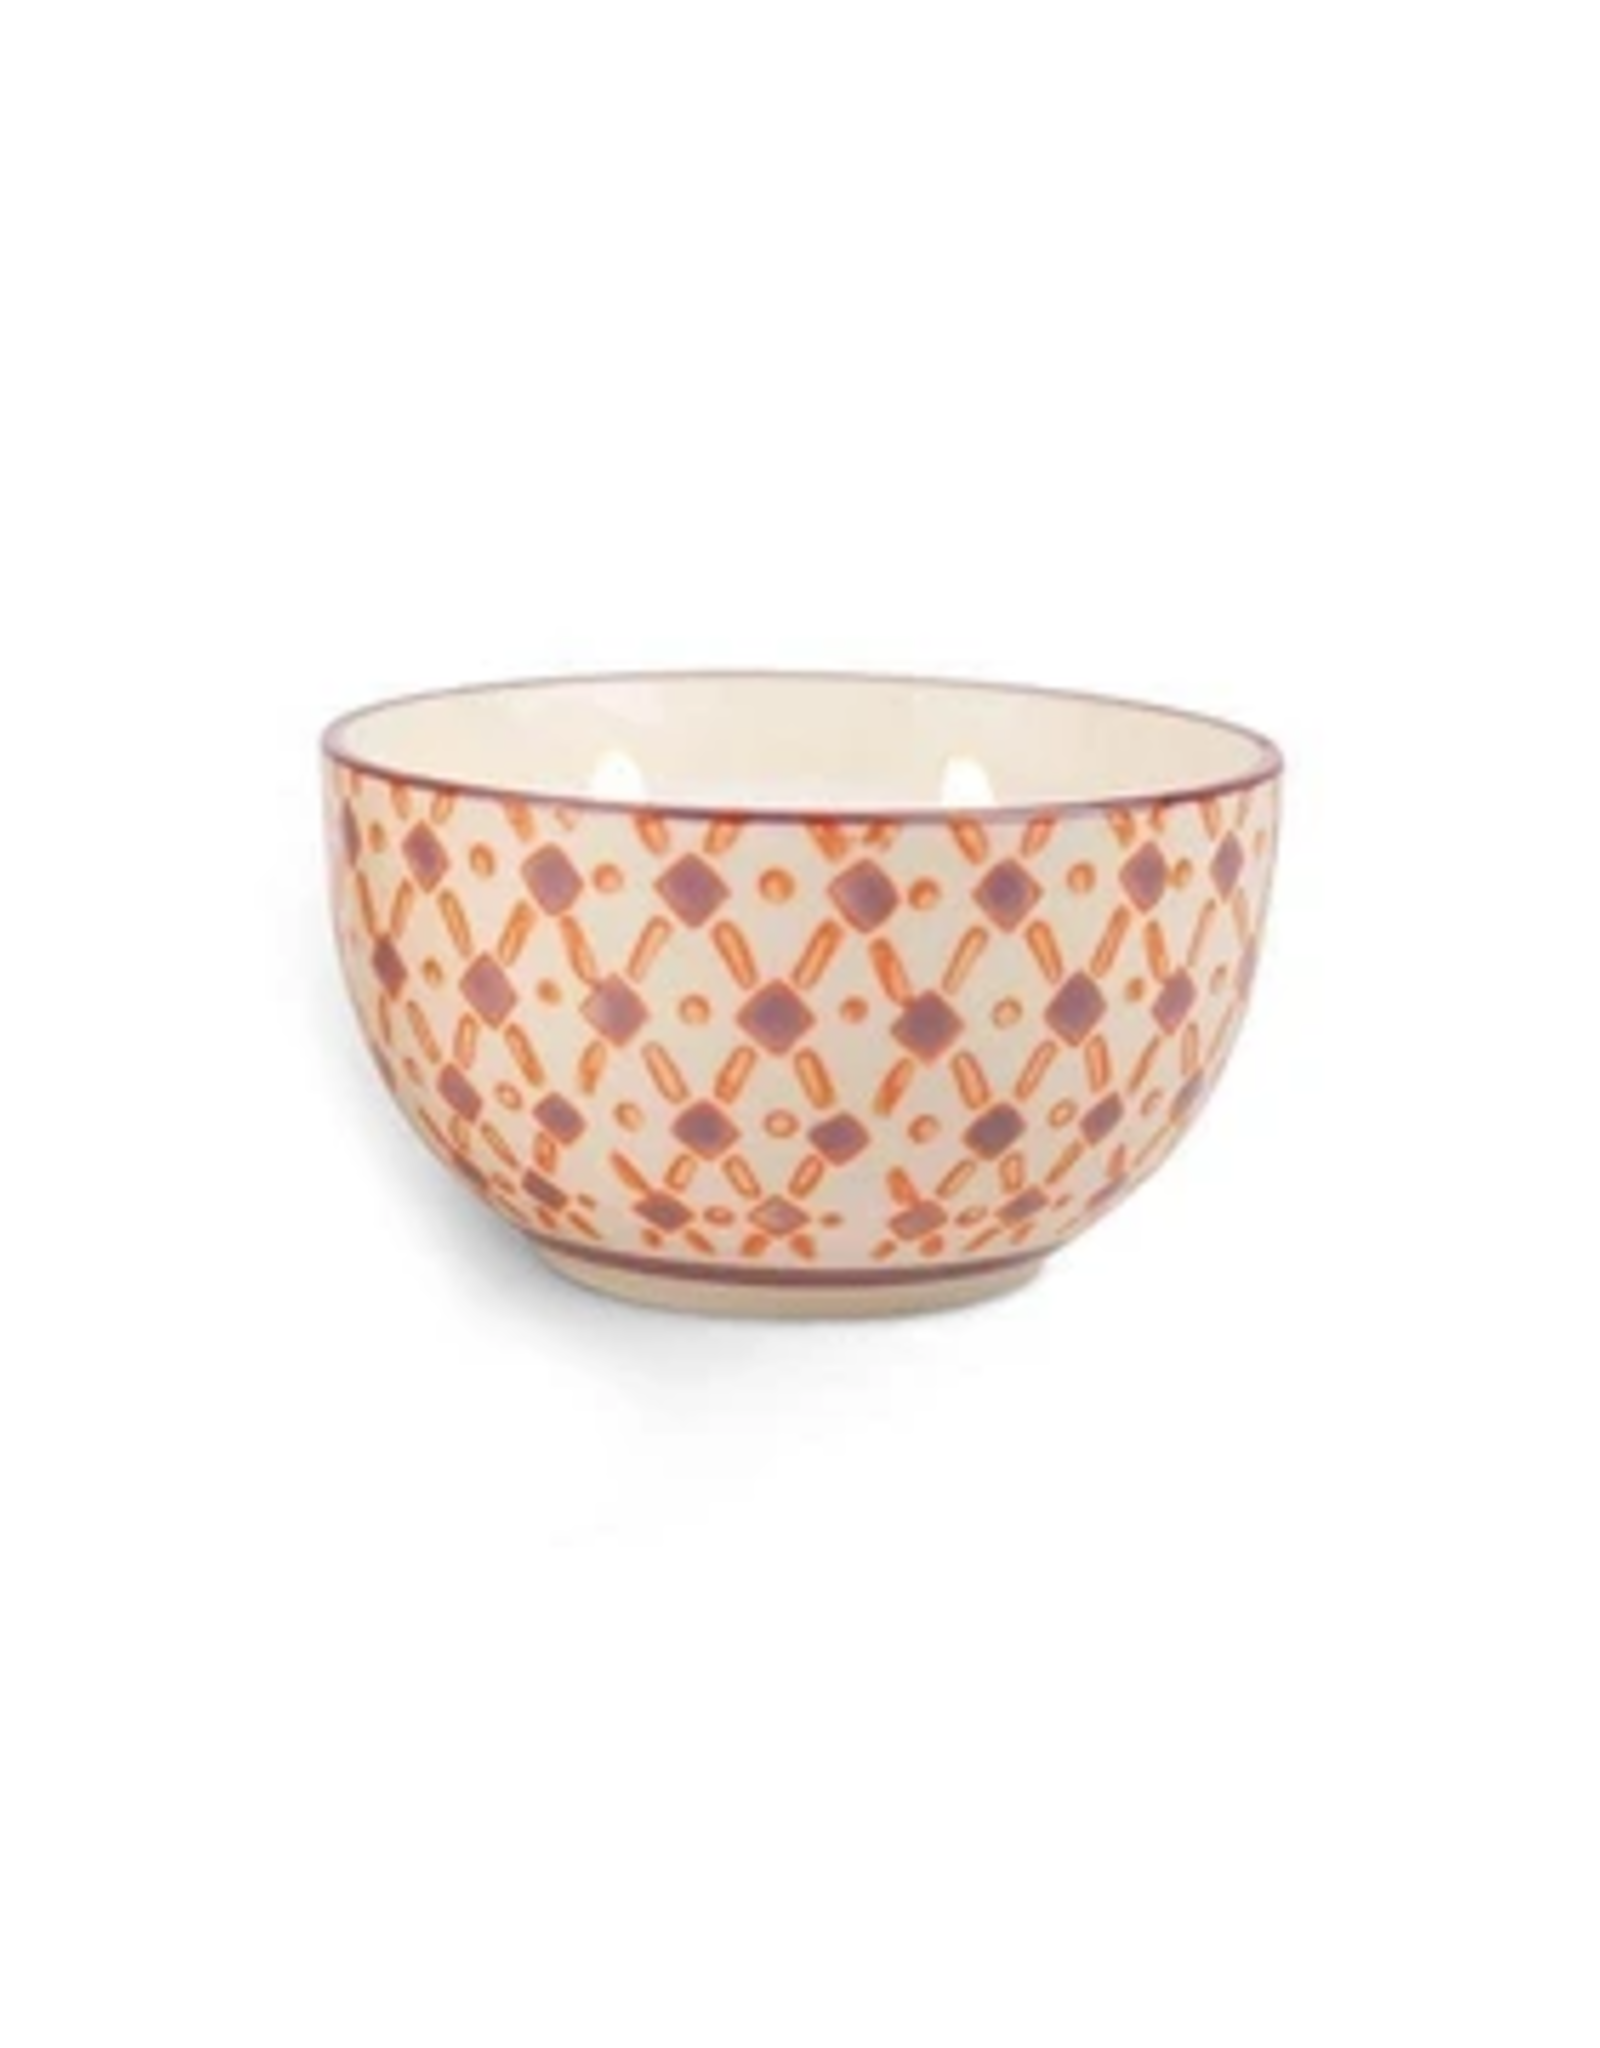 Paddywax Painted Bowl Candle, Small, Pink Pepper & Pomelo